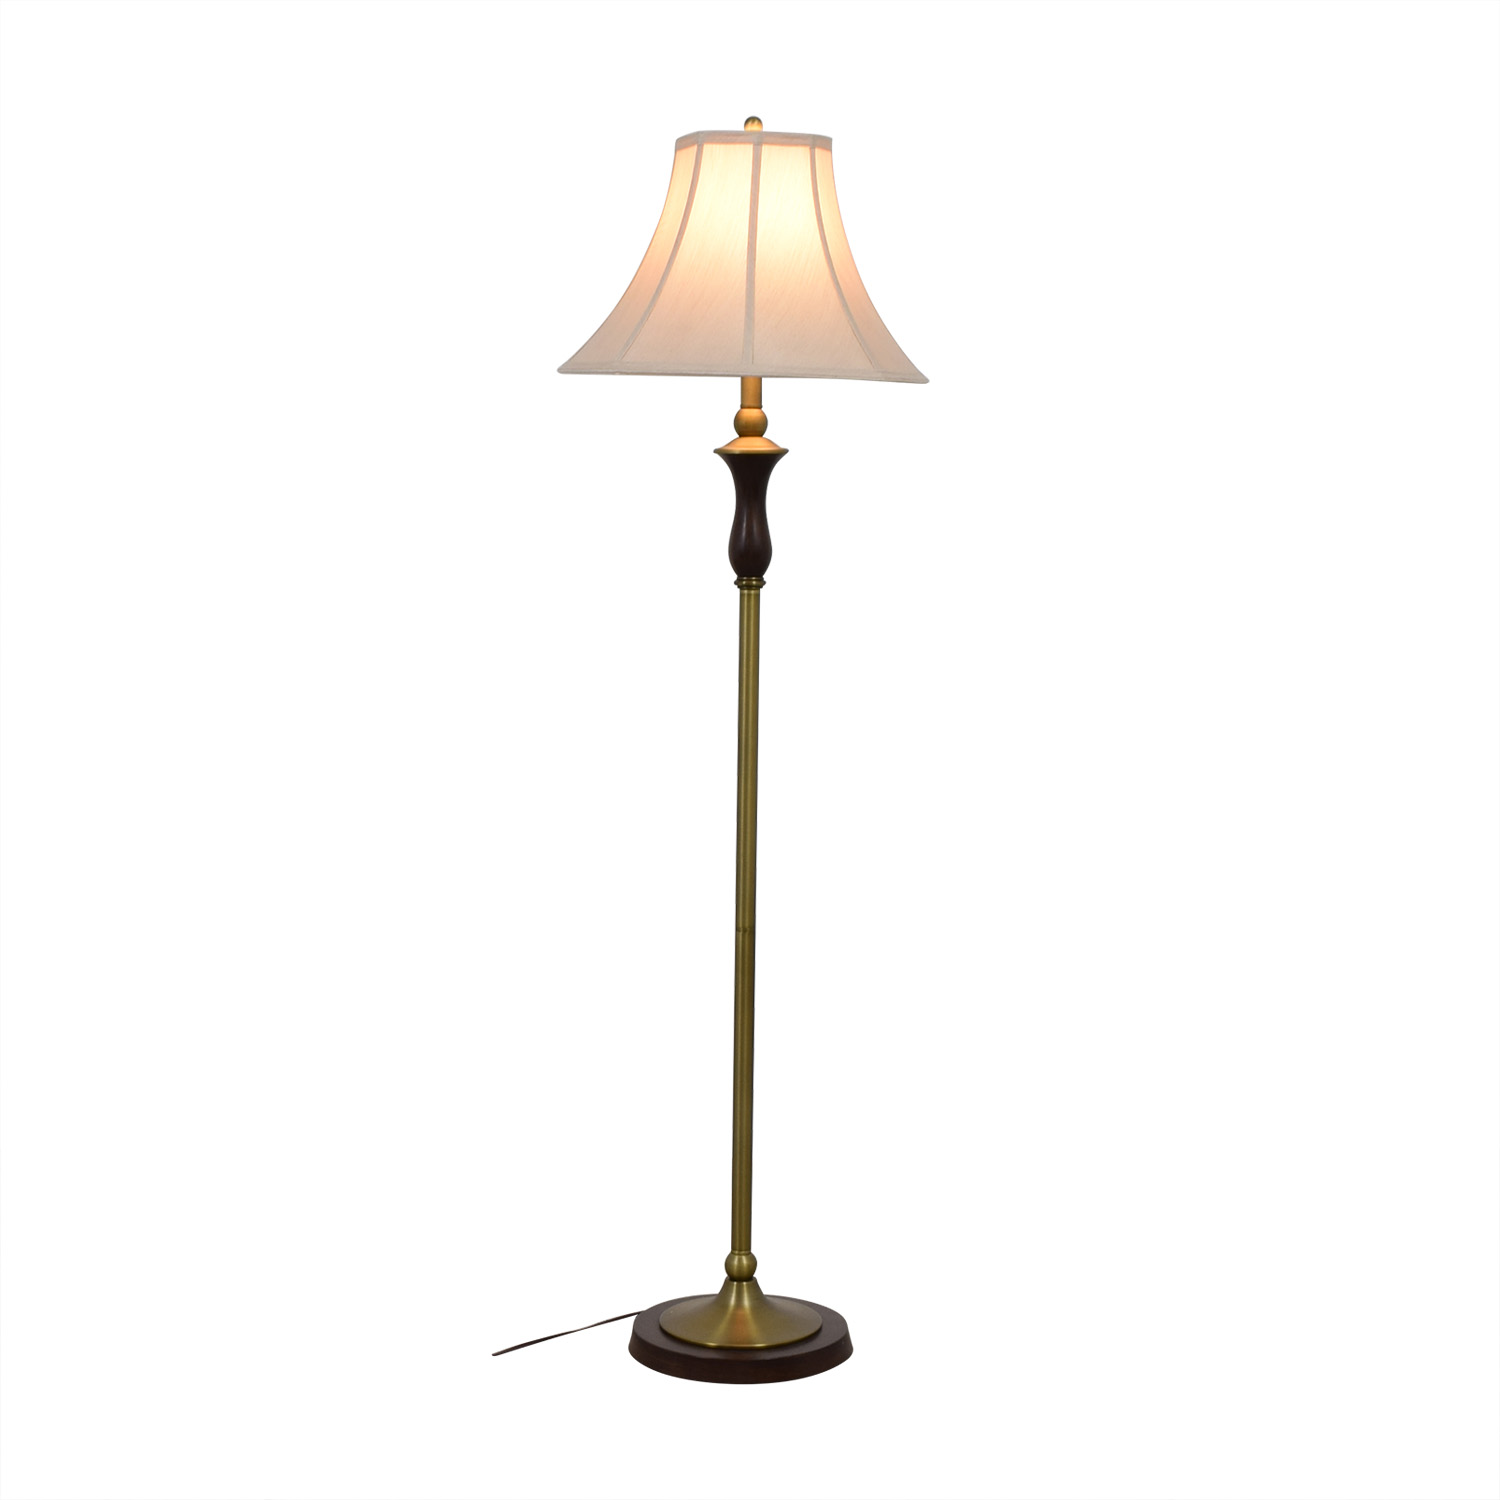 buy Crate & Barrel Crate & Barrel Wood and Brass Floor Lamp online